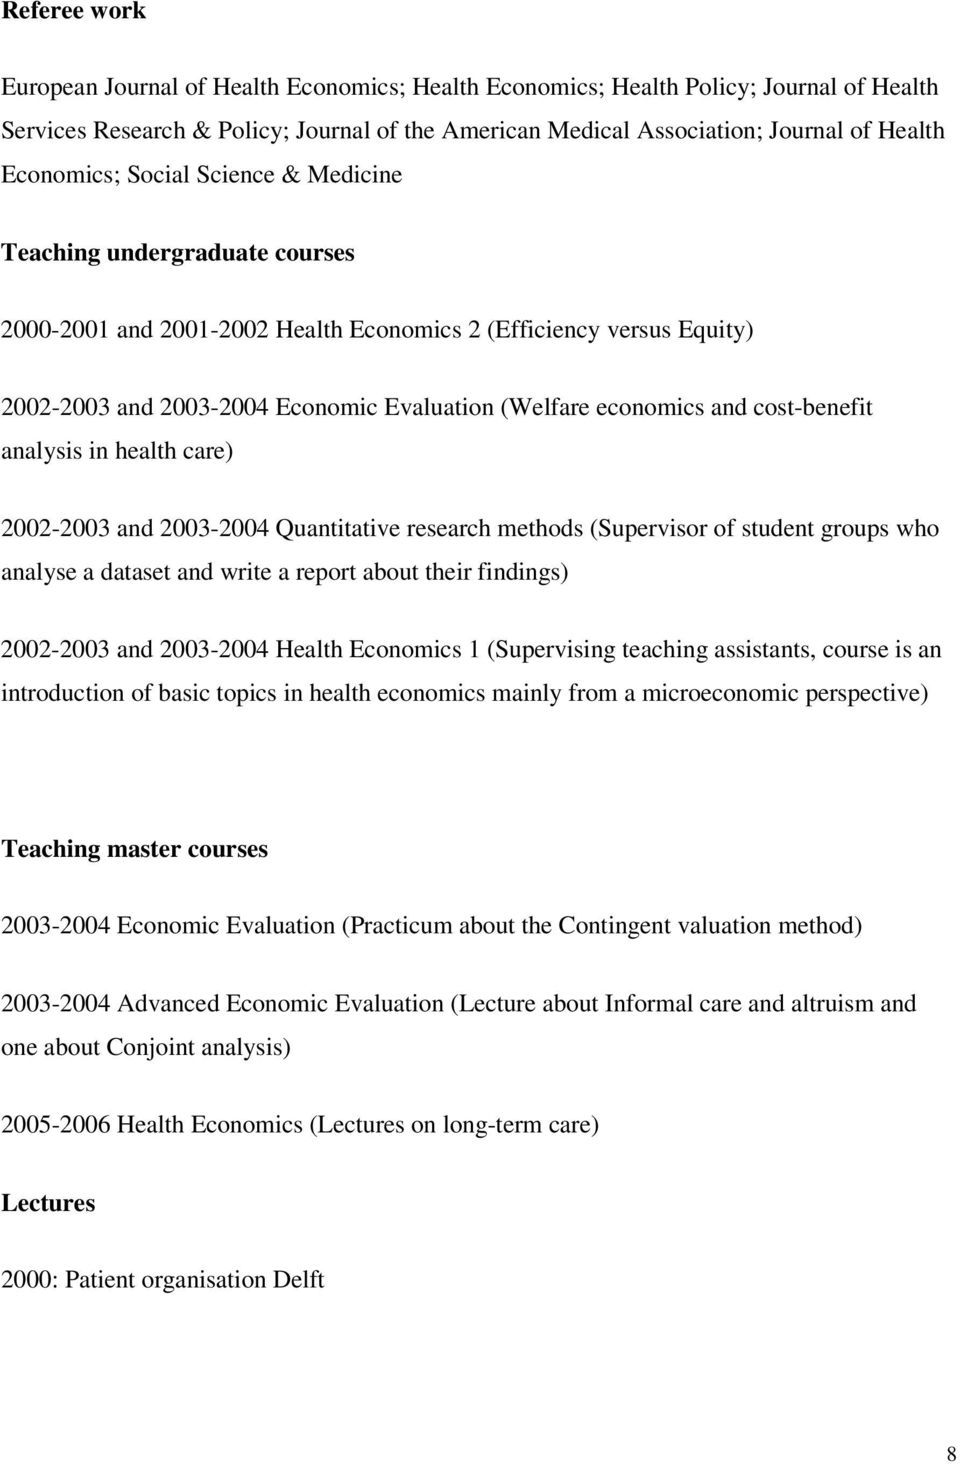 economics and cost-benefit analysis in health care) 2002-2003 and 2003-2004 Quantitative research methods (Supervisor of student groups who analyse a dataset and write a report about their findings)